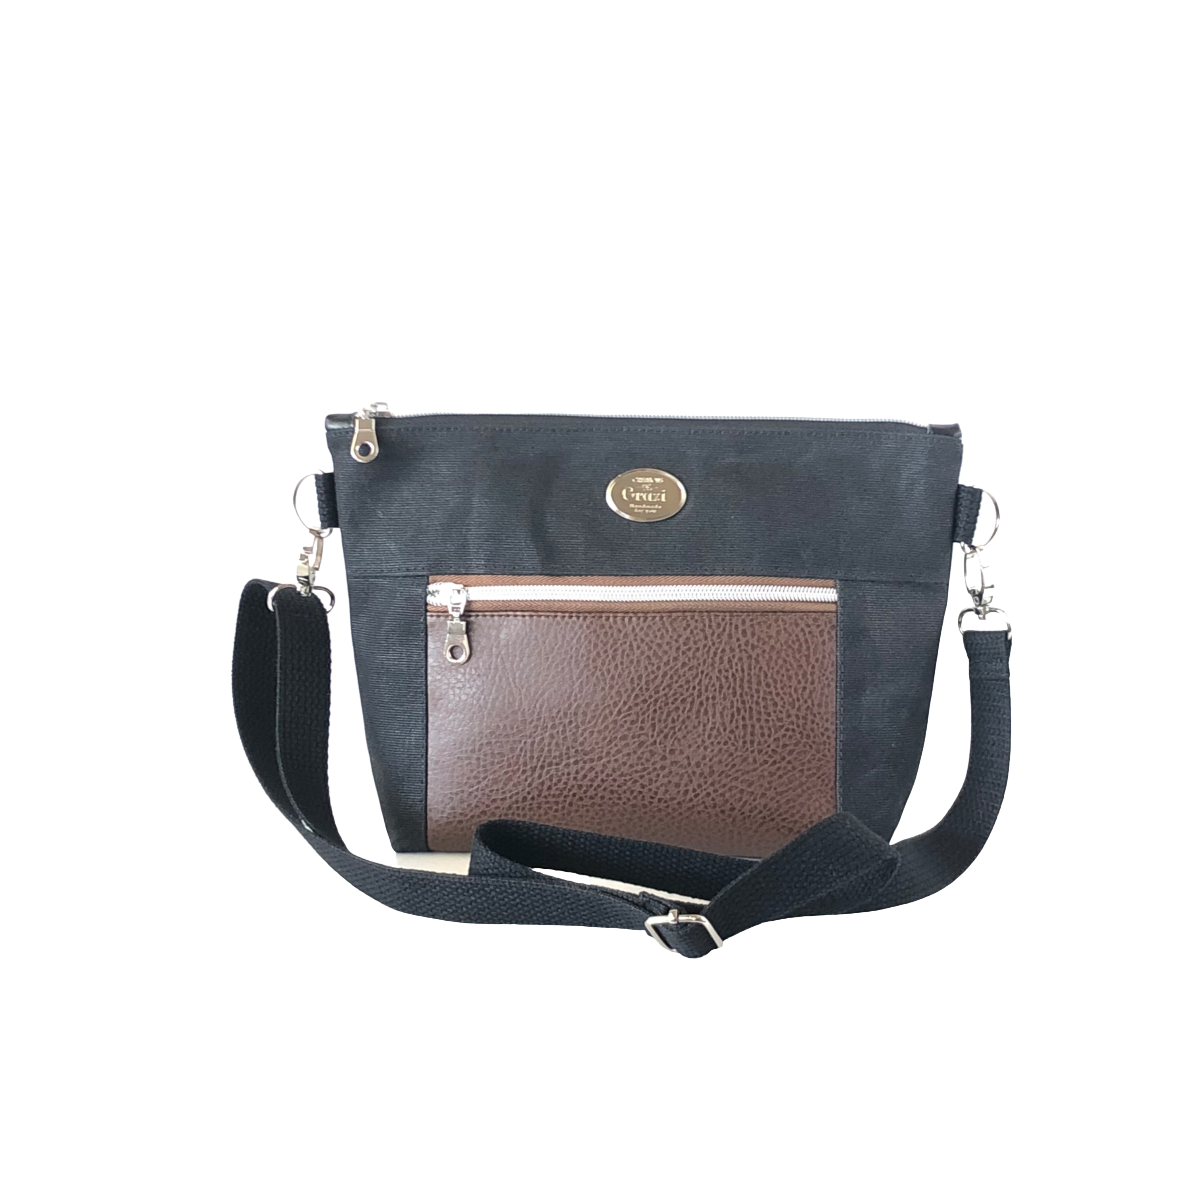 Wax Canvas Faux Leather Crossbody Bag - Black/Brown